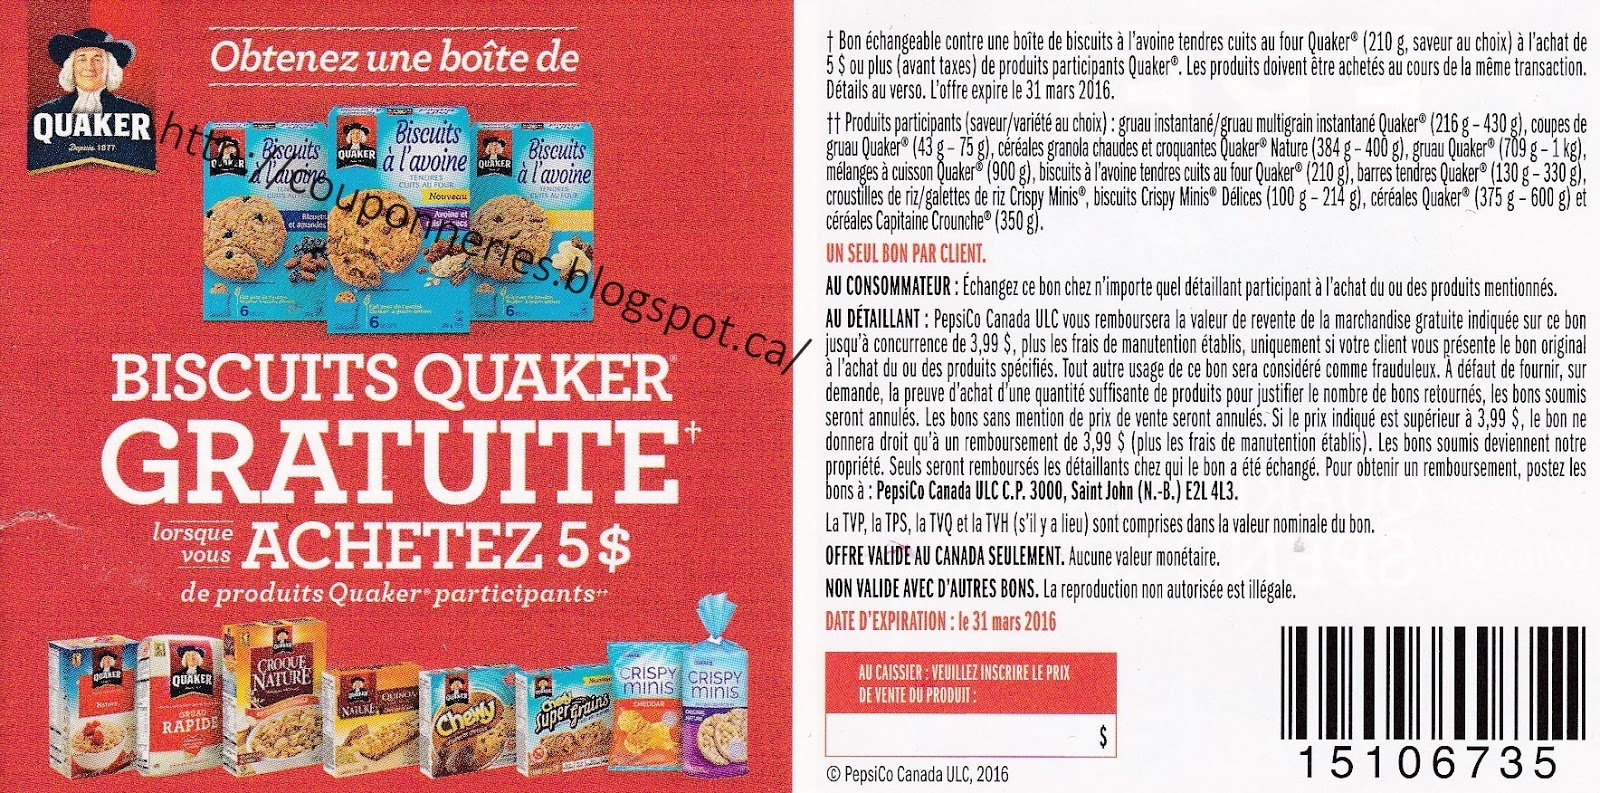 Quaker coupons